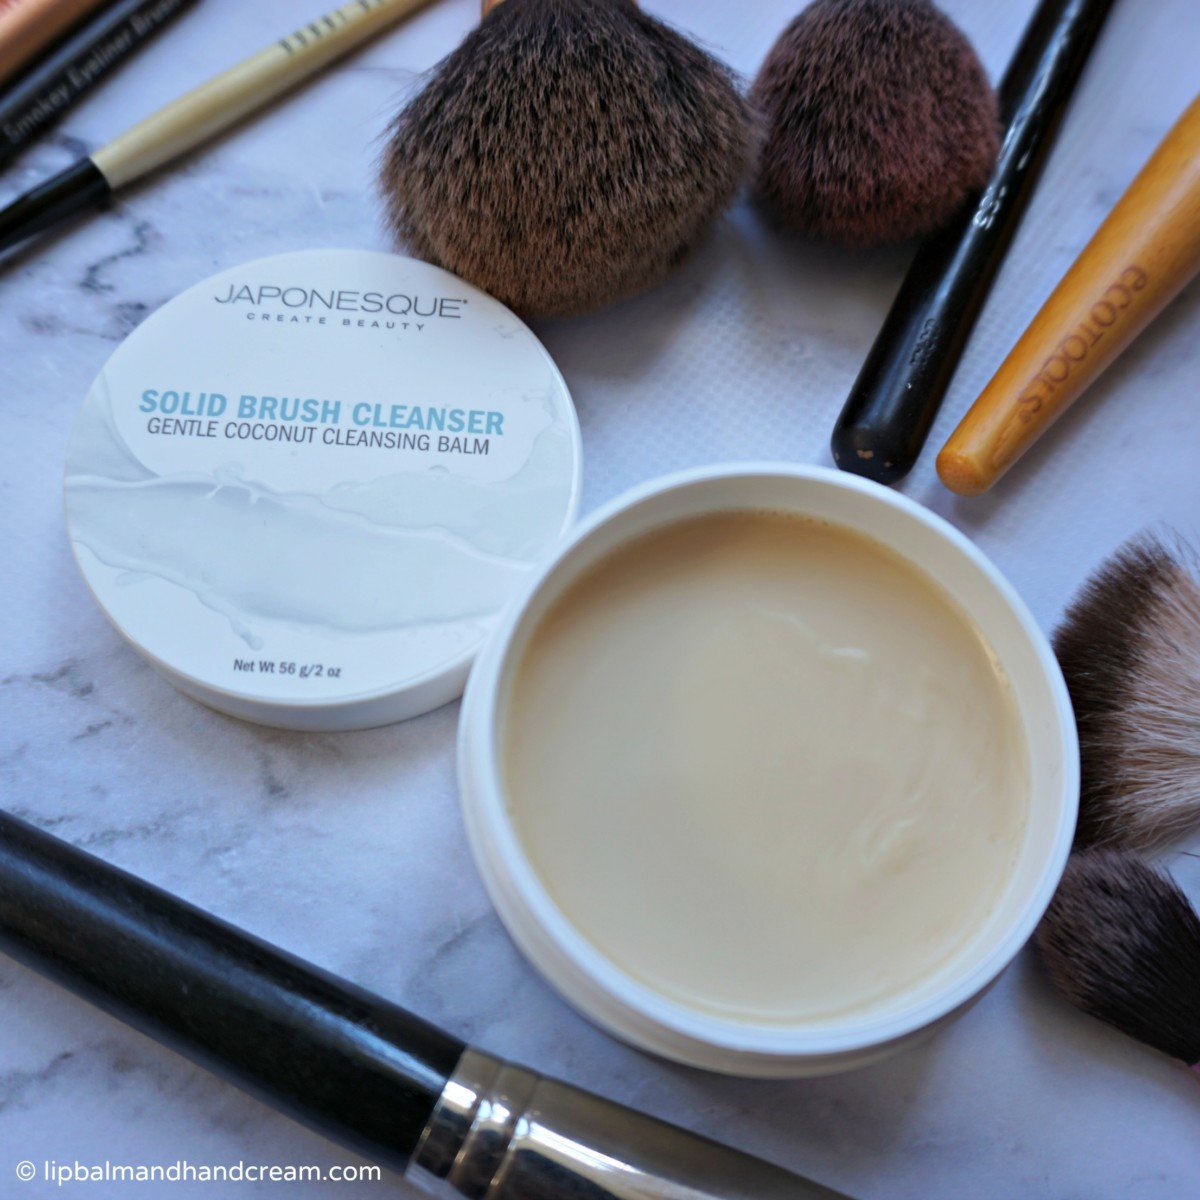 Brush cleaning just got easier – Japonesque Solid Brush Cleanser